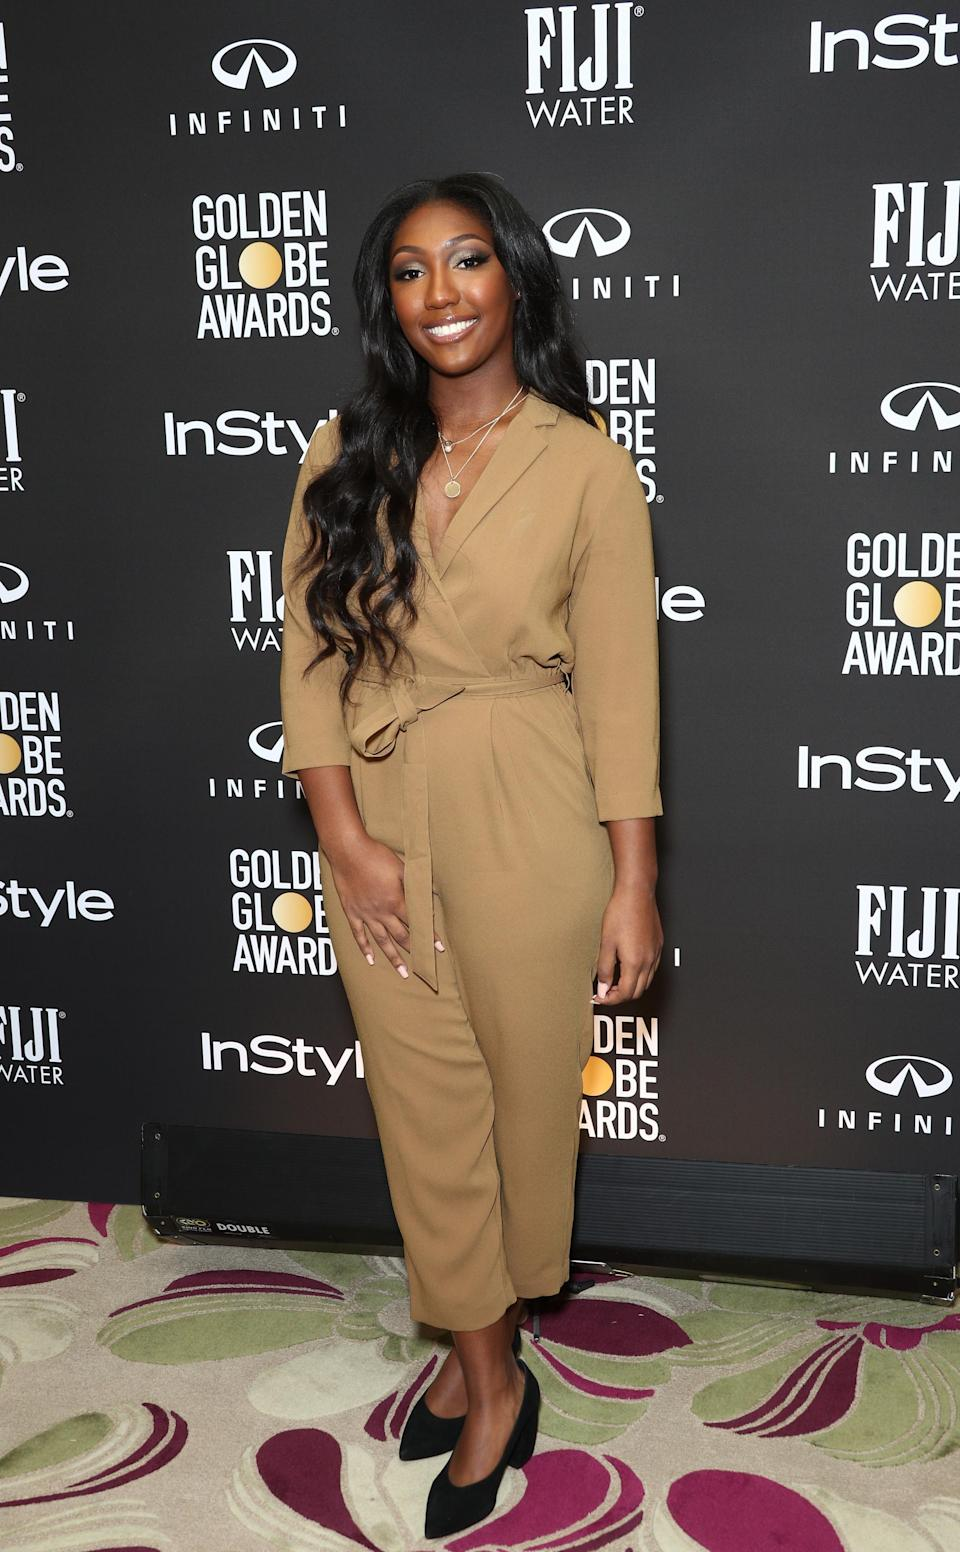 Isan Elba at the Nov. 14 event announcing that she is the 2019 Golden Globe ambassador, following in the footsteps of the Rock's eldest daughter, Simone Johnson. (Photo: Frederick M. Brown/Getty Images)